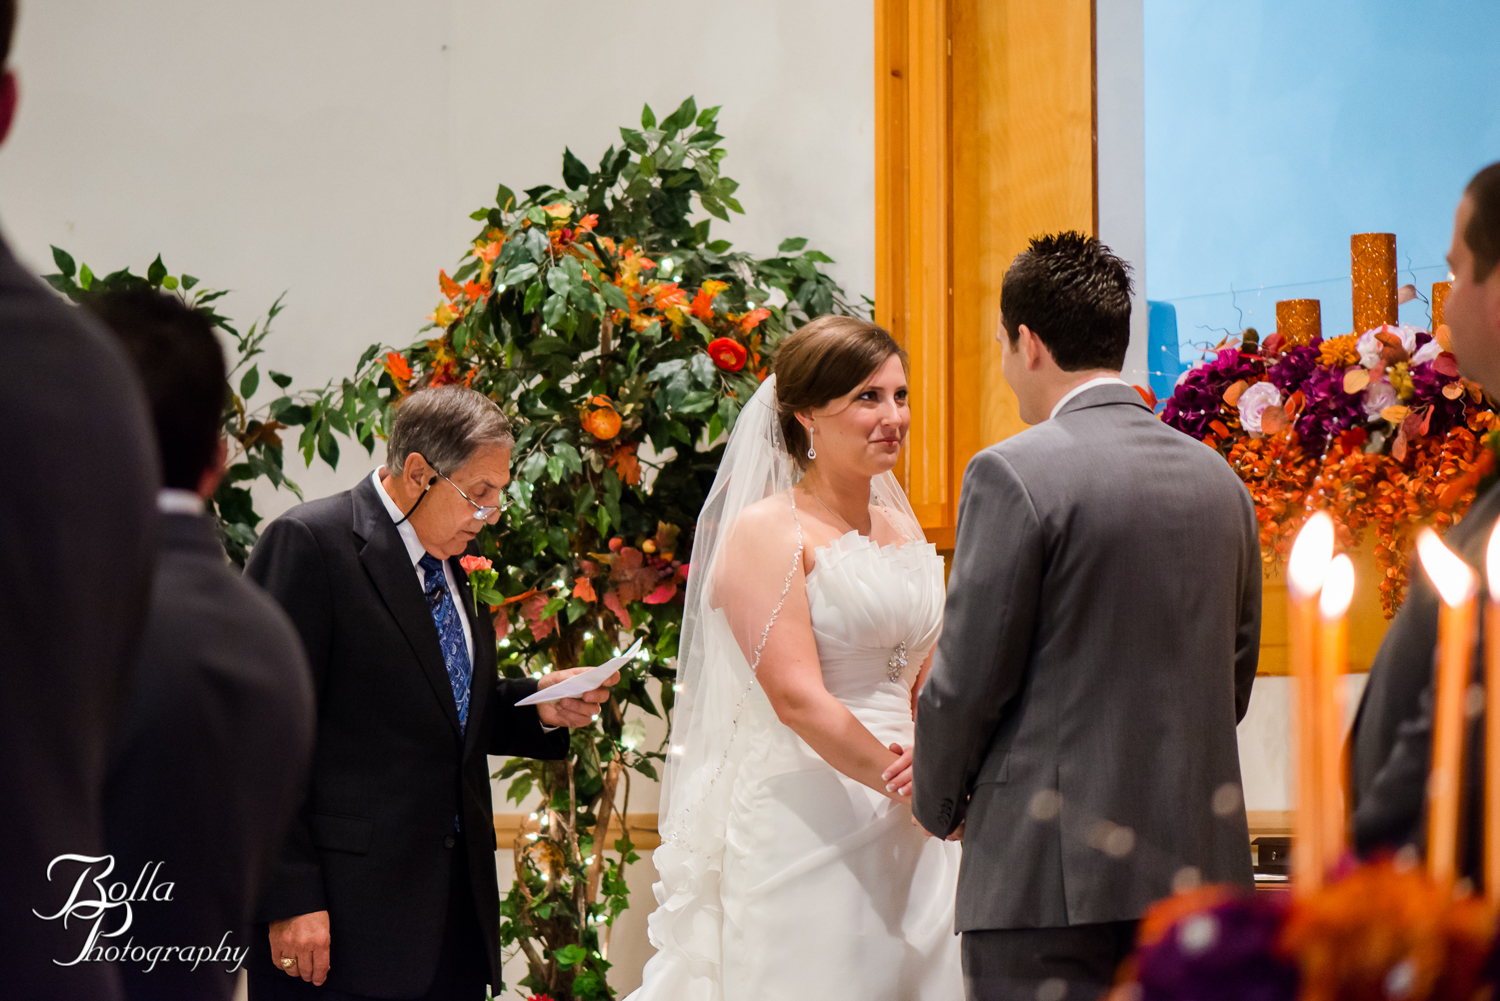 Bolla_Photography_St_Louis_wedding_photographer-0183.jpg